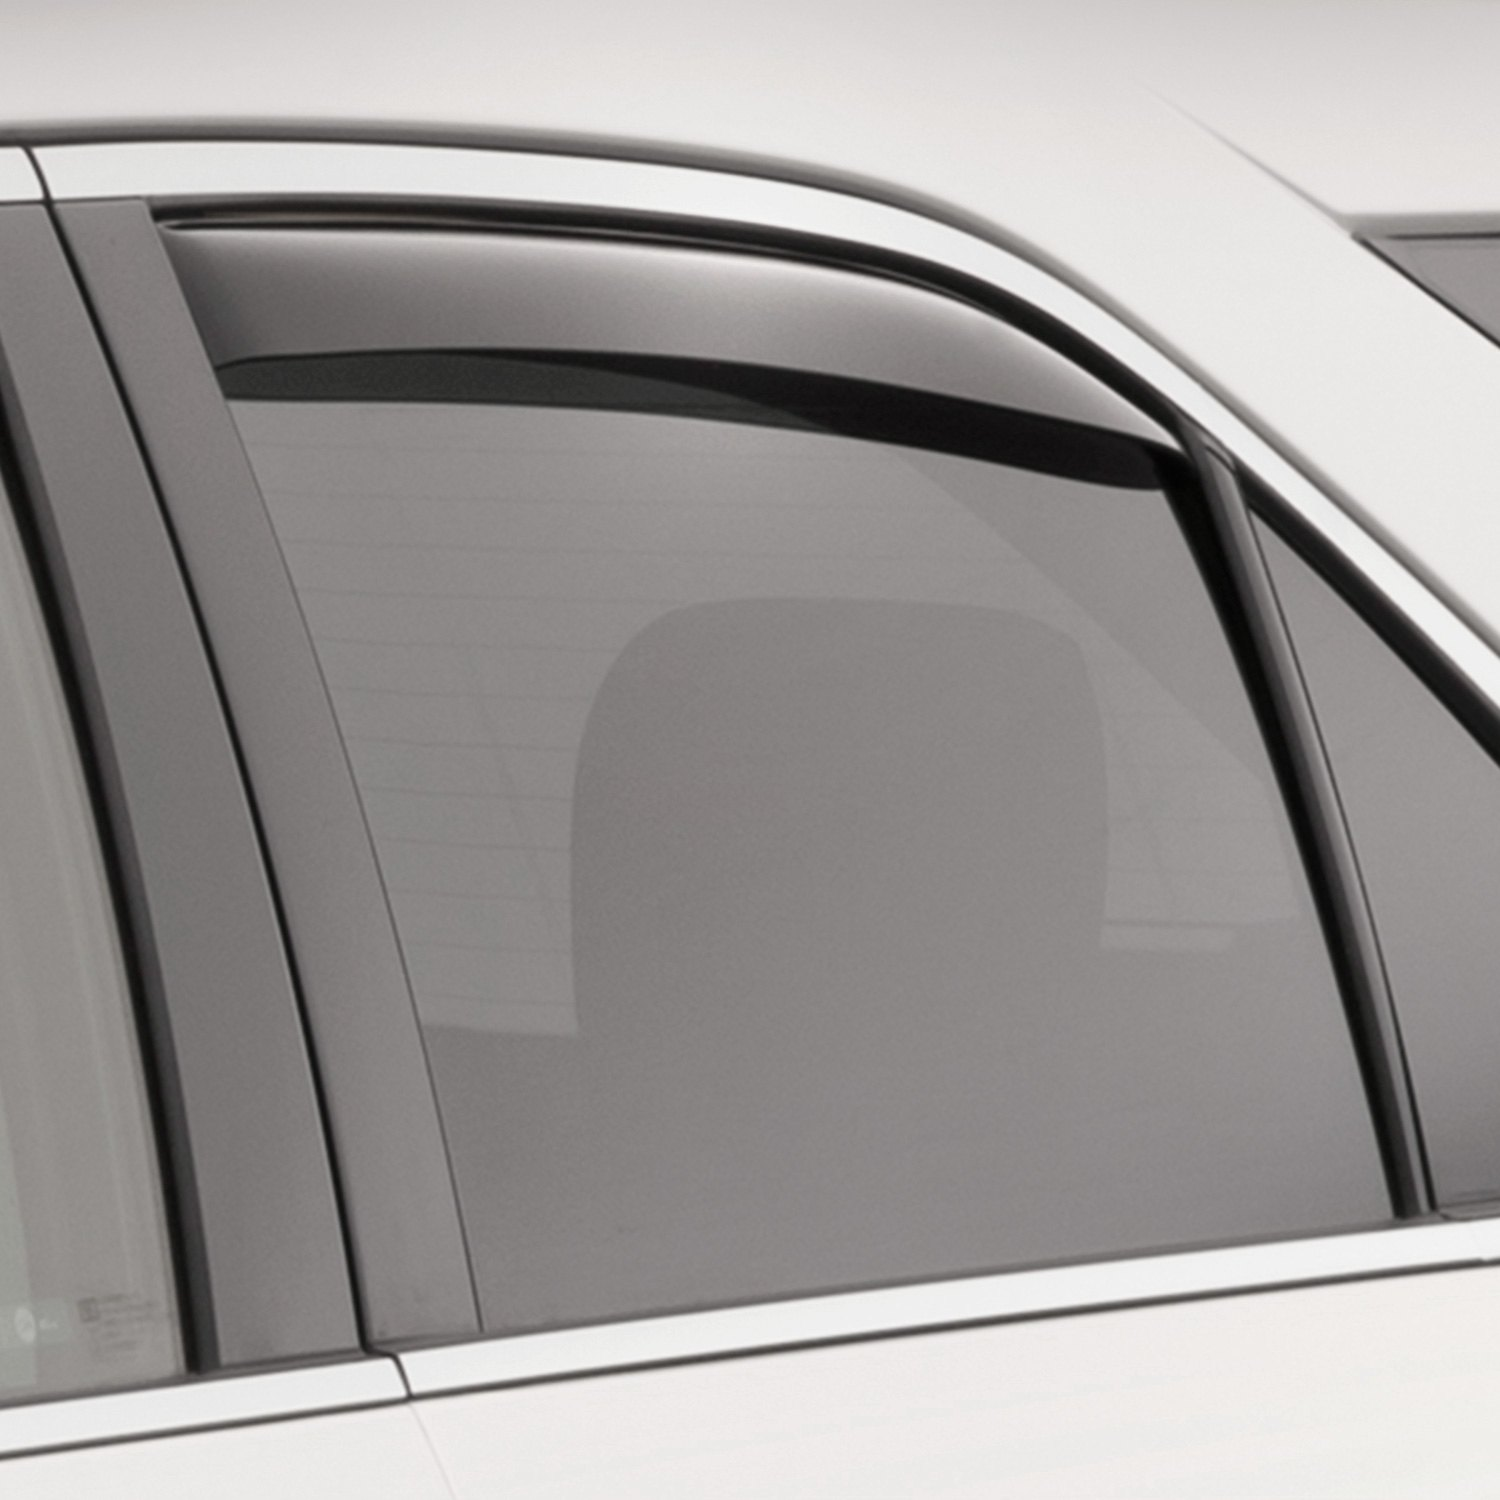 Weathertech chevy equinox 2017 in channel side window for Window guards